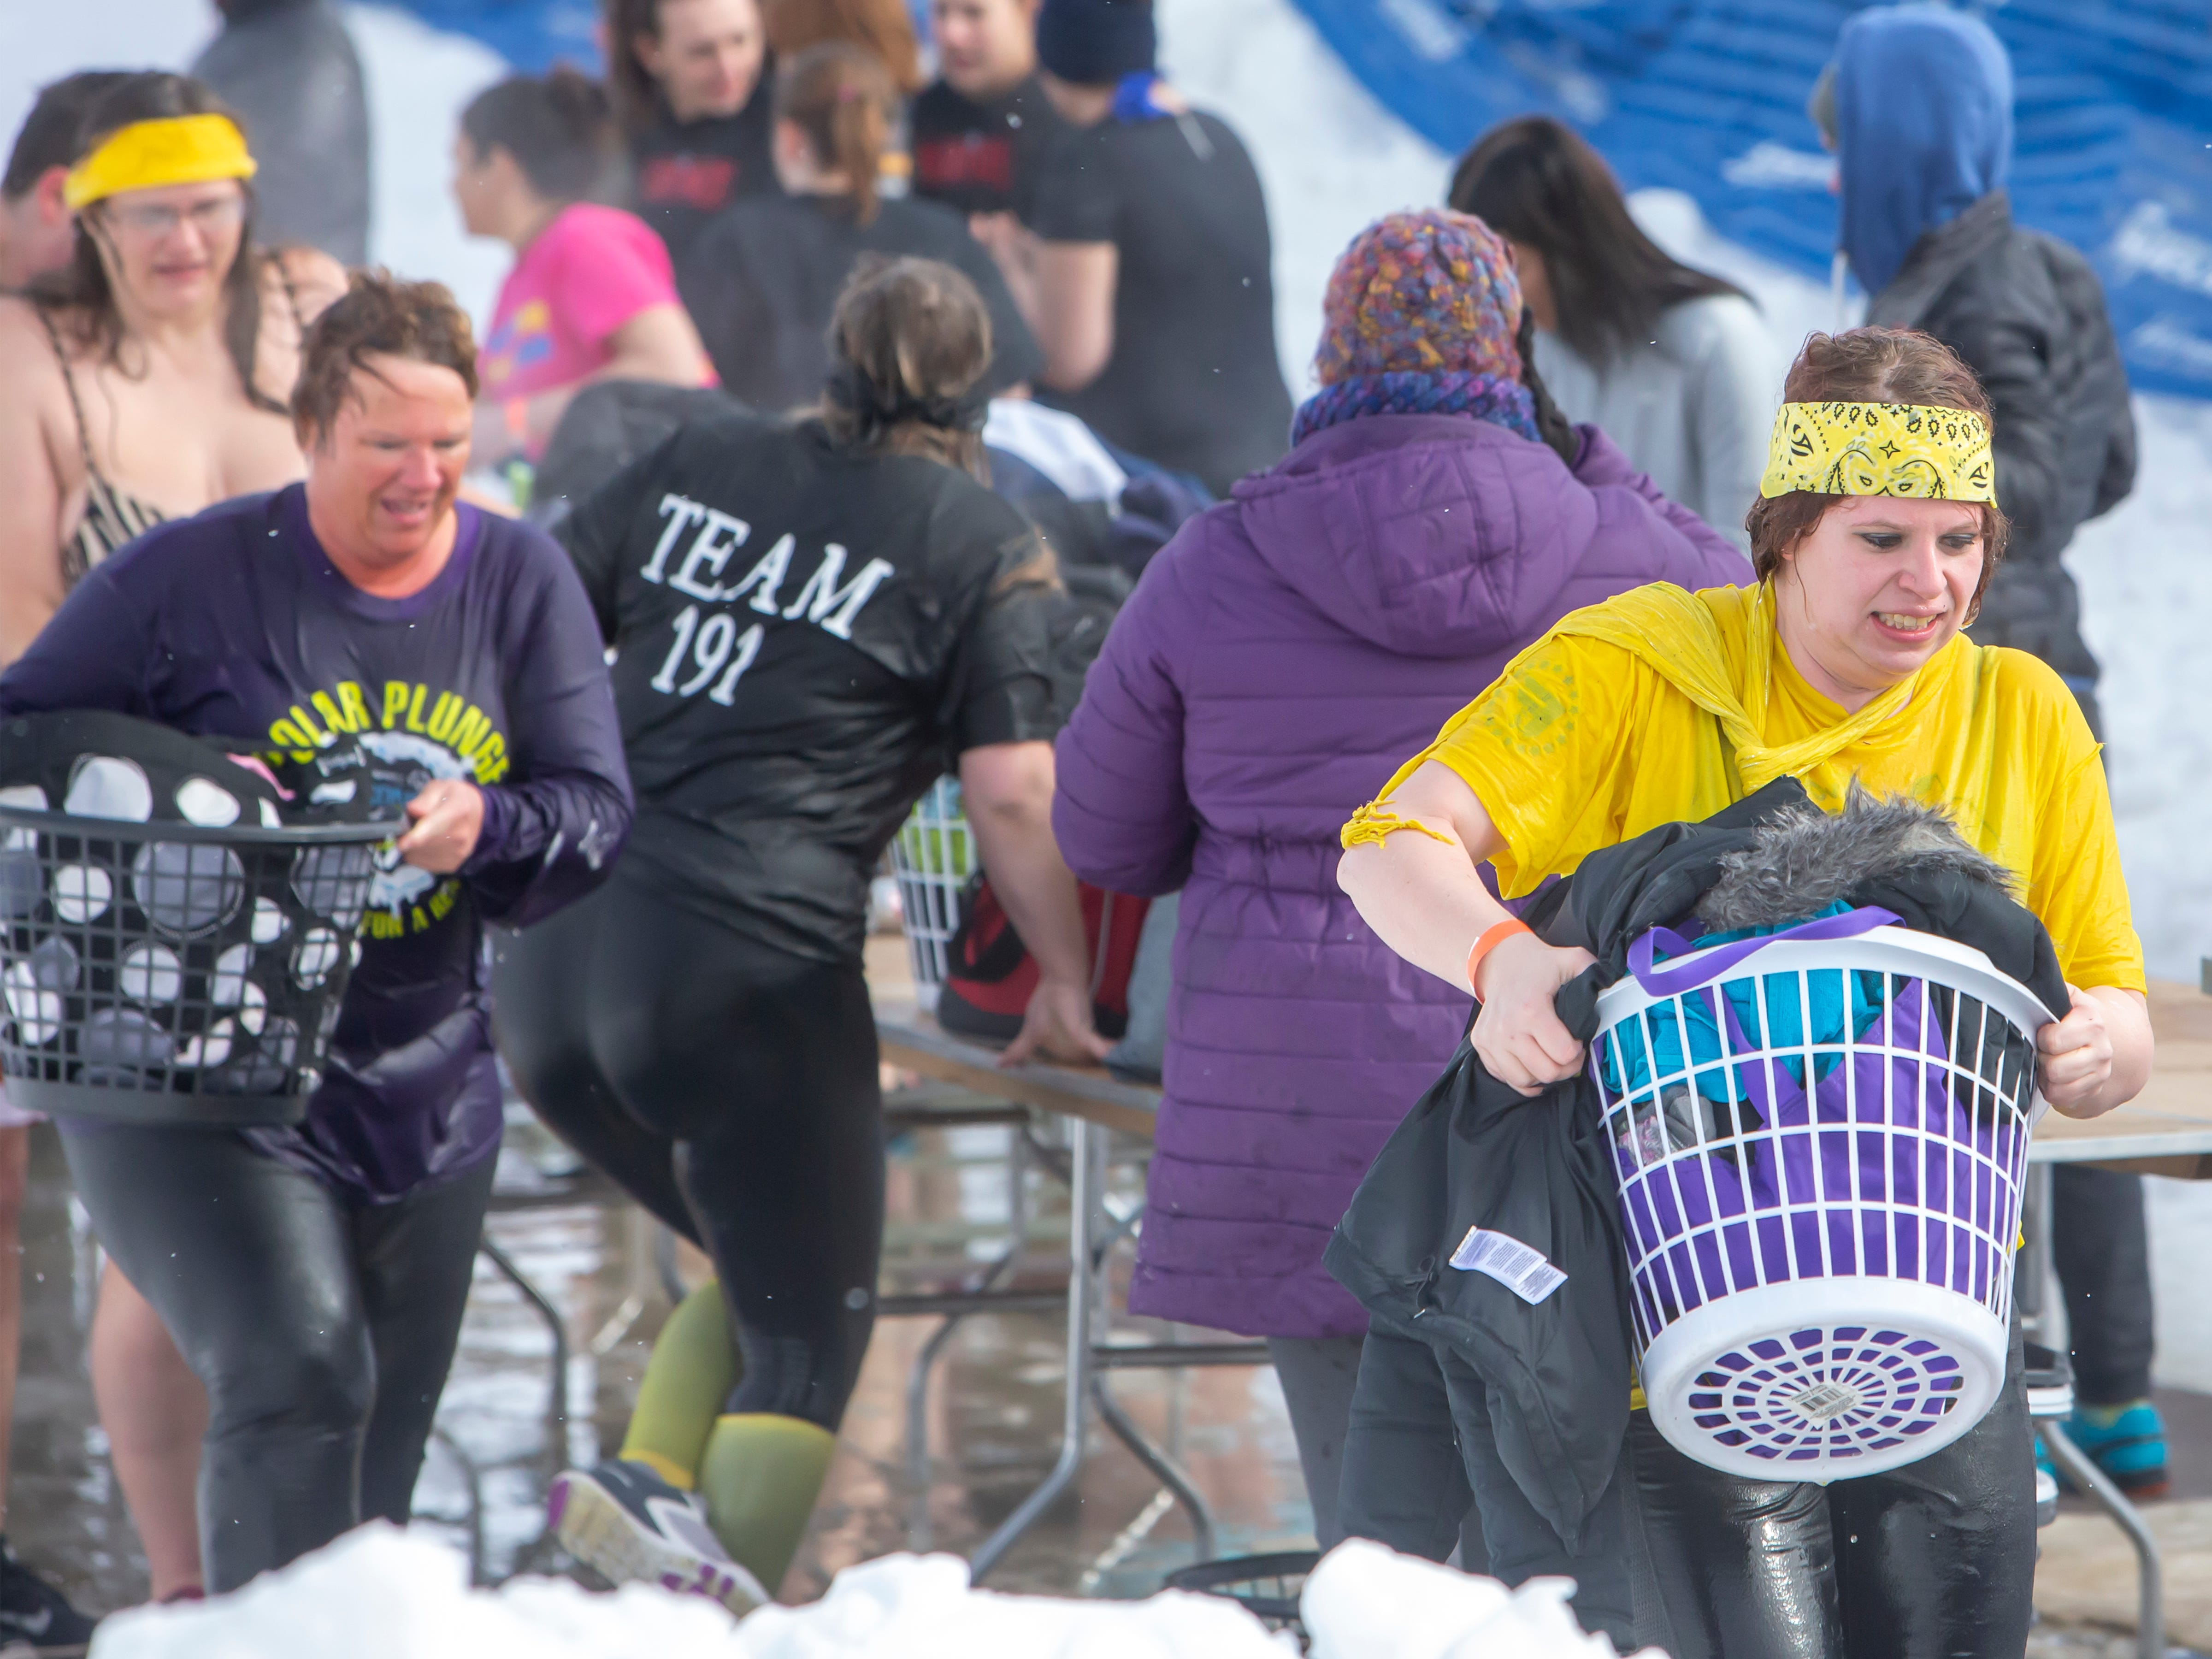 Participants hurry to a warmer spot after their plunge during the Special Olympics Wisconsin Polar Plunge in Oshkosh, Wis., on Saturday, February 16, 2019, at Miller's Bay in Menominee Park.